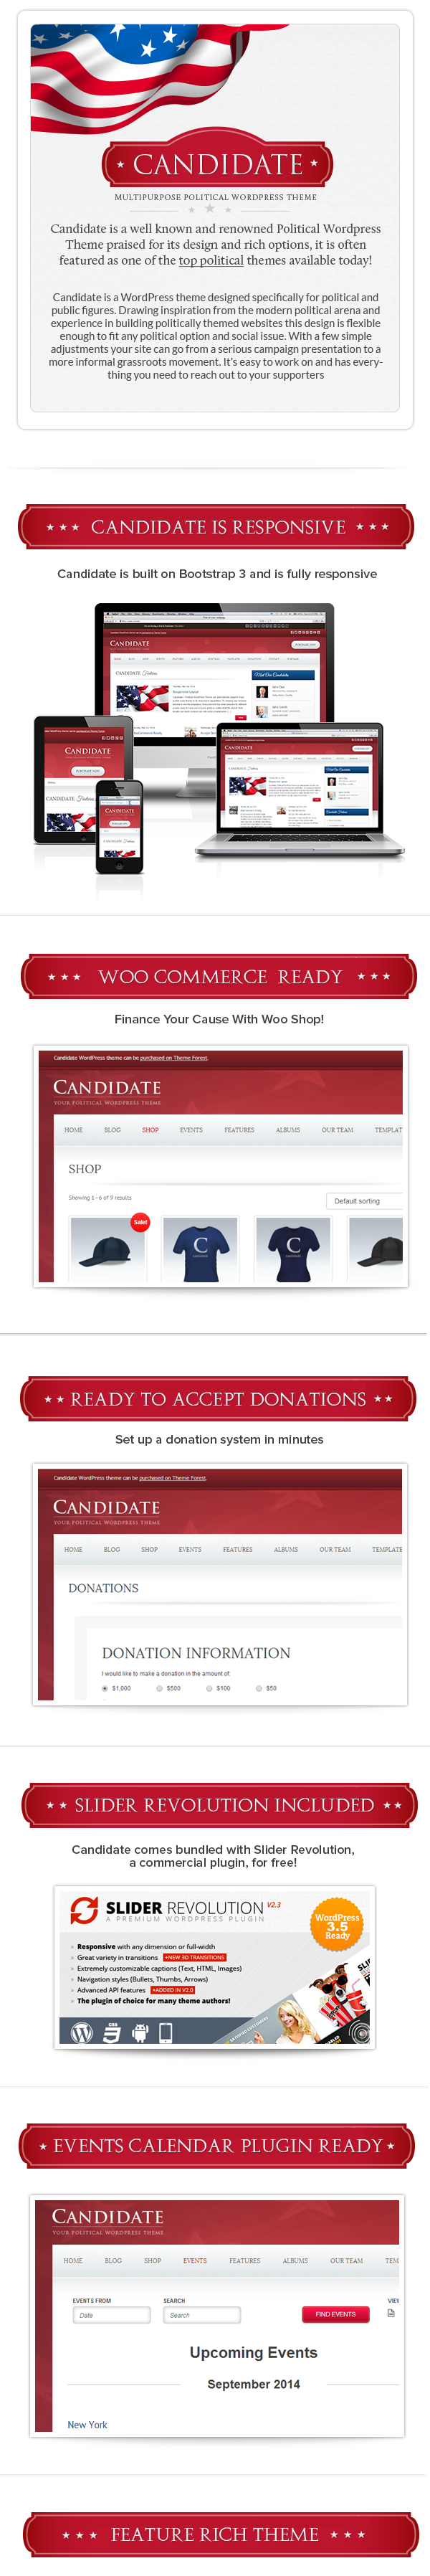 Candidate - Political WordPress Theme - 1